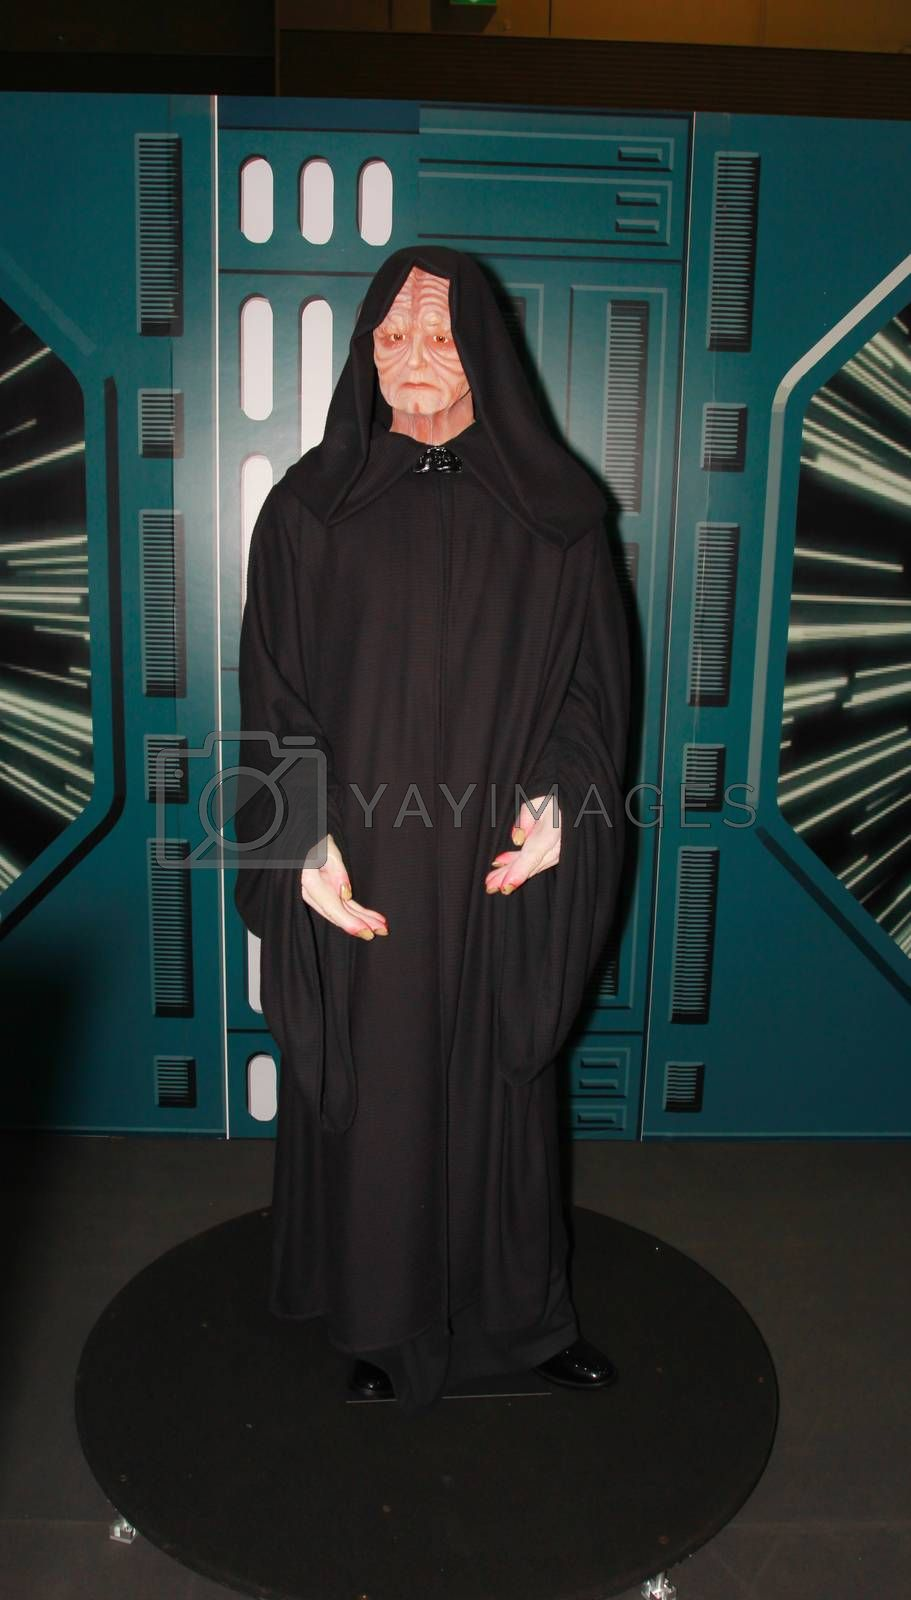 Royalty free image of A model of the character Emperor Palpatine from the movies and comic by redthirteen